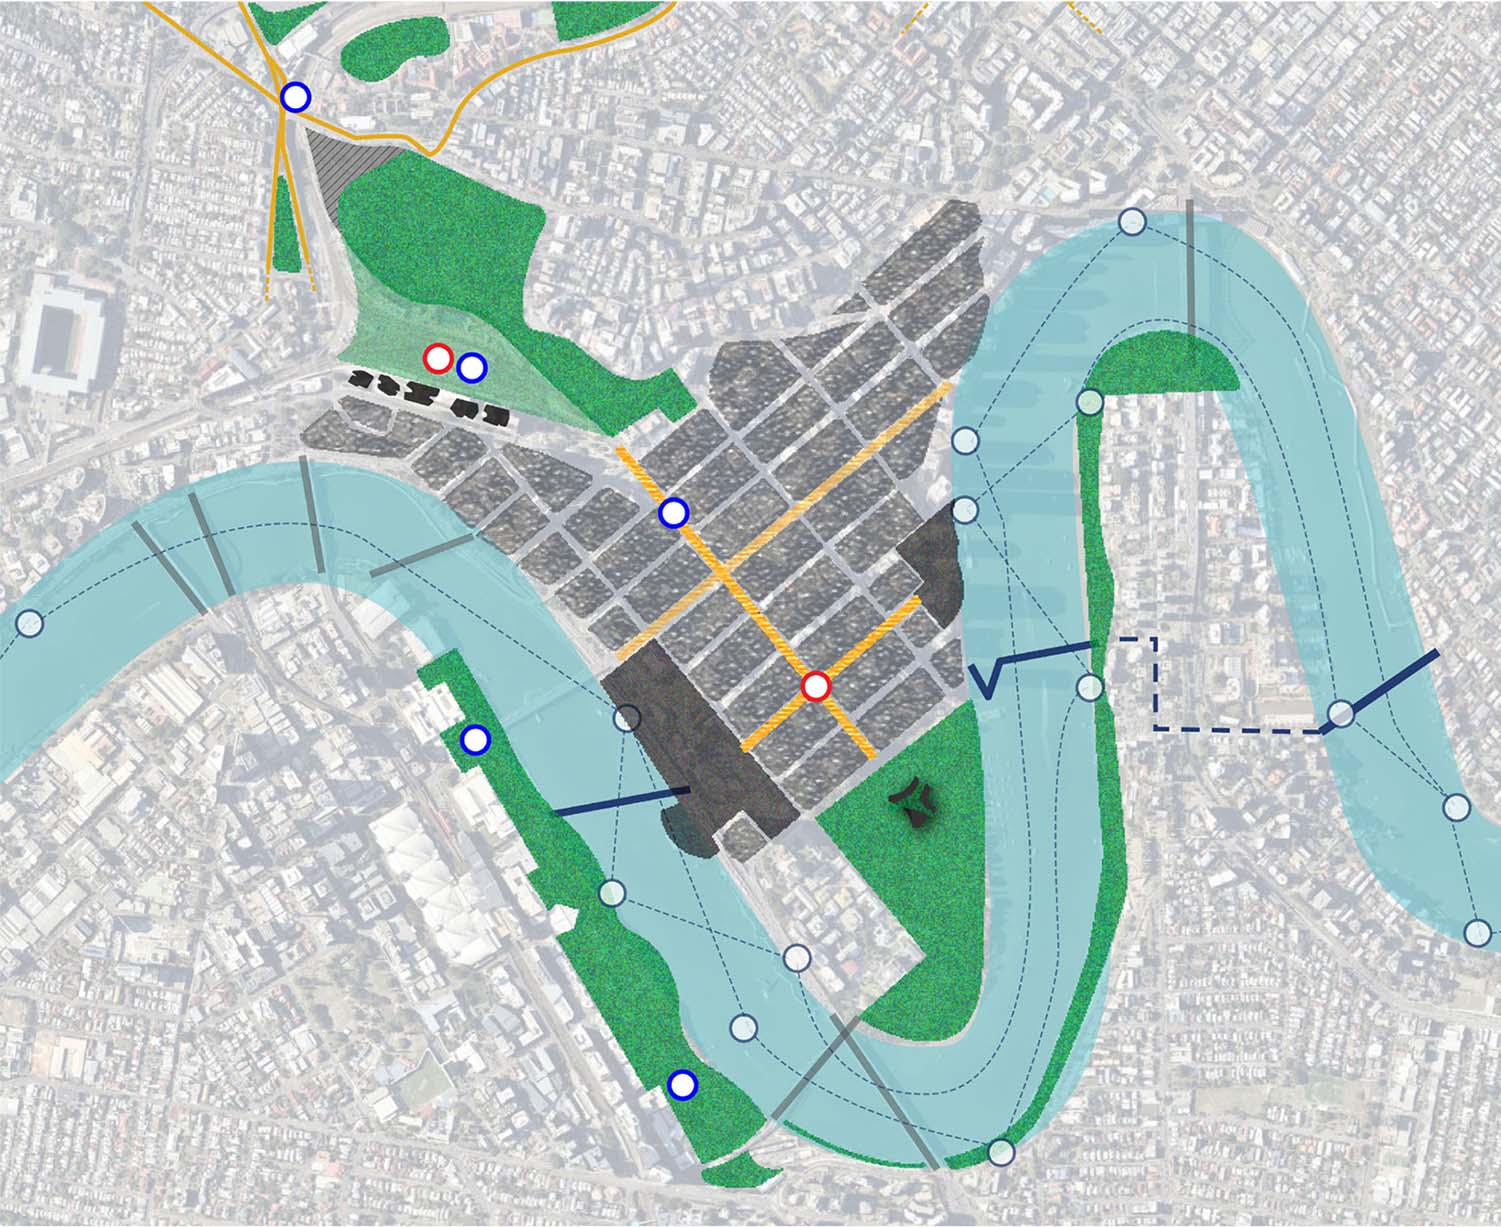 Main components of CBD and Roma Street Parklands - Brisbane's Defining Green Corridor